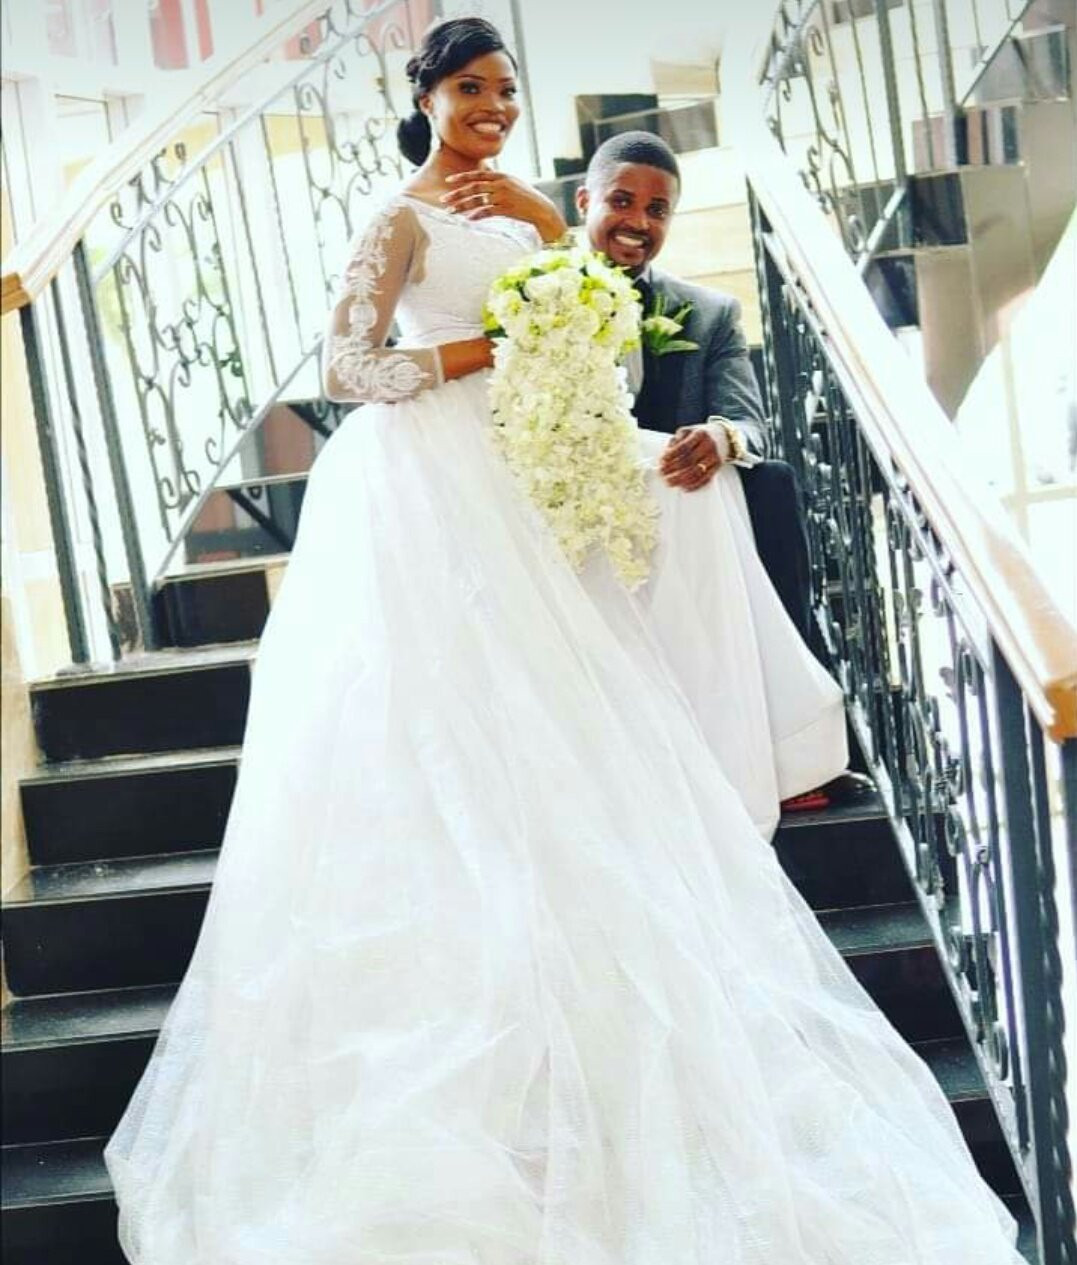 """6131588304eef - """"JAMB lesson teacher turned hubby"""" Woman writes as she celebrates wedding anniversary with her former teacher"""